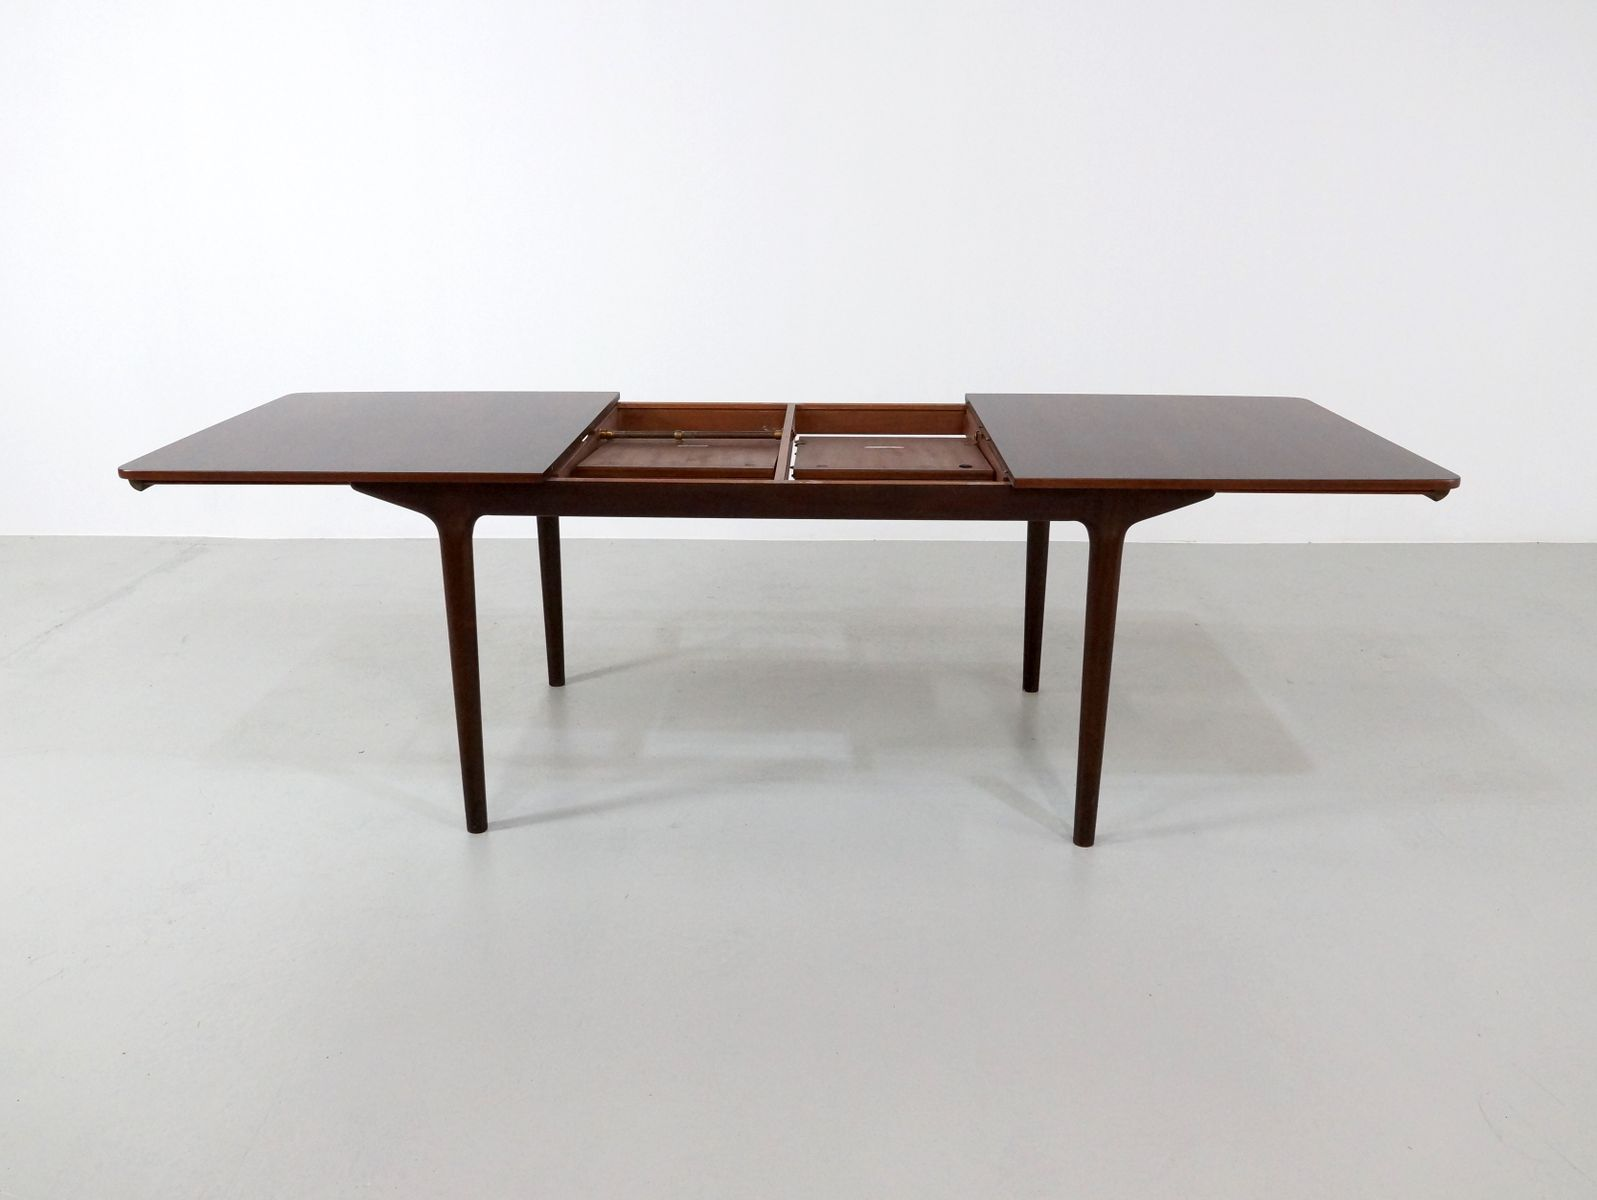 British Extendable Rosewood Dining Table from McIntosh  : british extendable rosewood dining table from mcintosh 1971 4 from www.pamono.co.uk size 1597 x 1200 jpeg 62kB